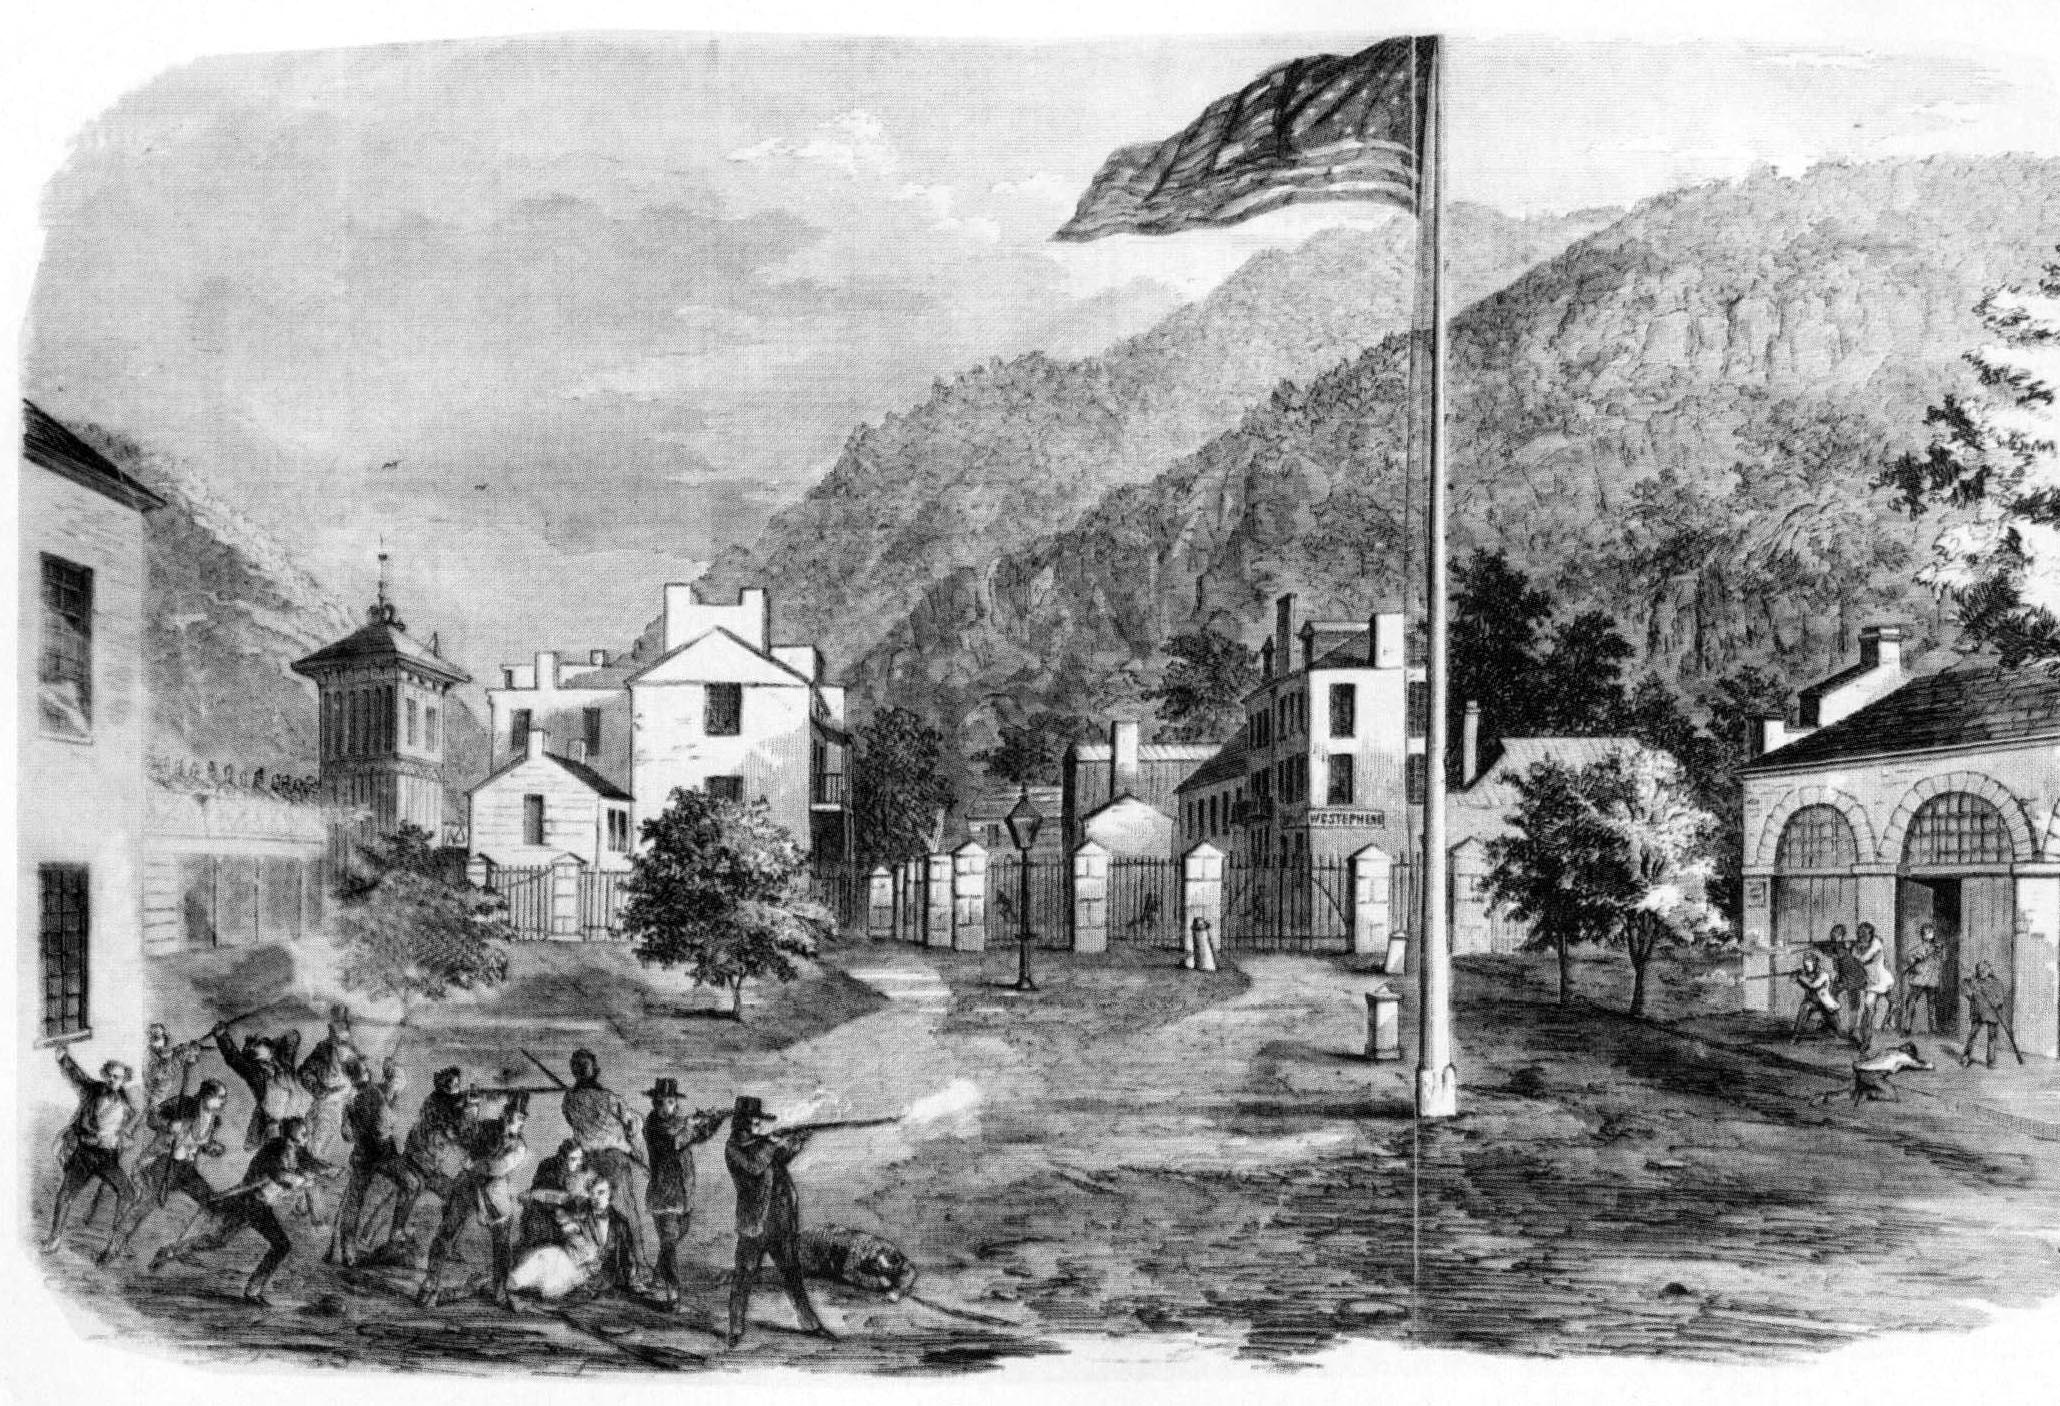 In October 1859, Secretary of War John B. Floyd ordered Lee to Harper's Ferry, West Virginia (above), with several companies of artillery and a detachment of marines to quell a bloody insurrection masterminded by abolitionist John Brown.